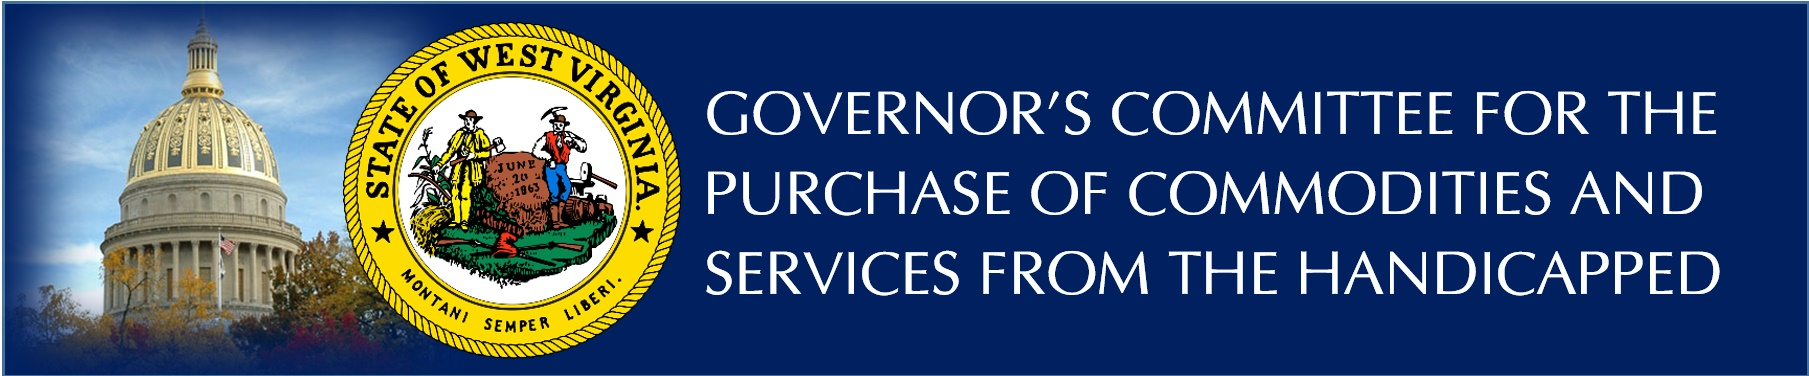 Governor's Committee for the Purchase of Commodities and Services from the Handicapped